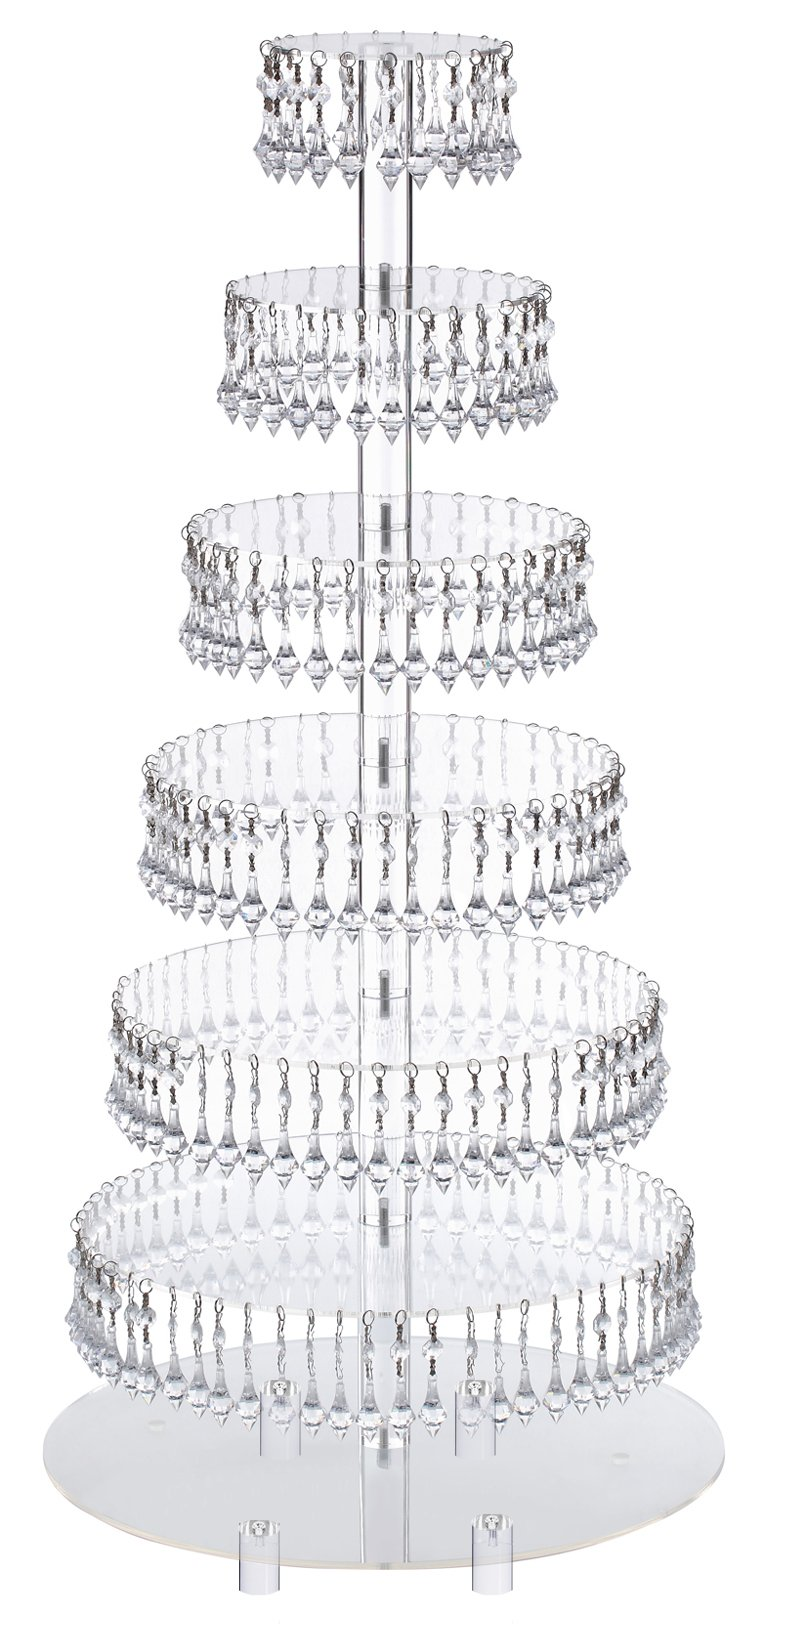 Pre-Installed Crystal Beads- 7 Tier Acrylic Cupcake Tower Stand with Hanging Crystal Bead-wedding Party Cake Tower (7 Tier With Feet)